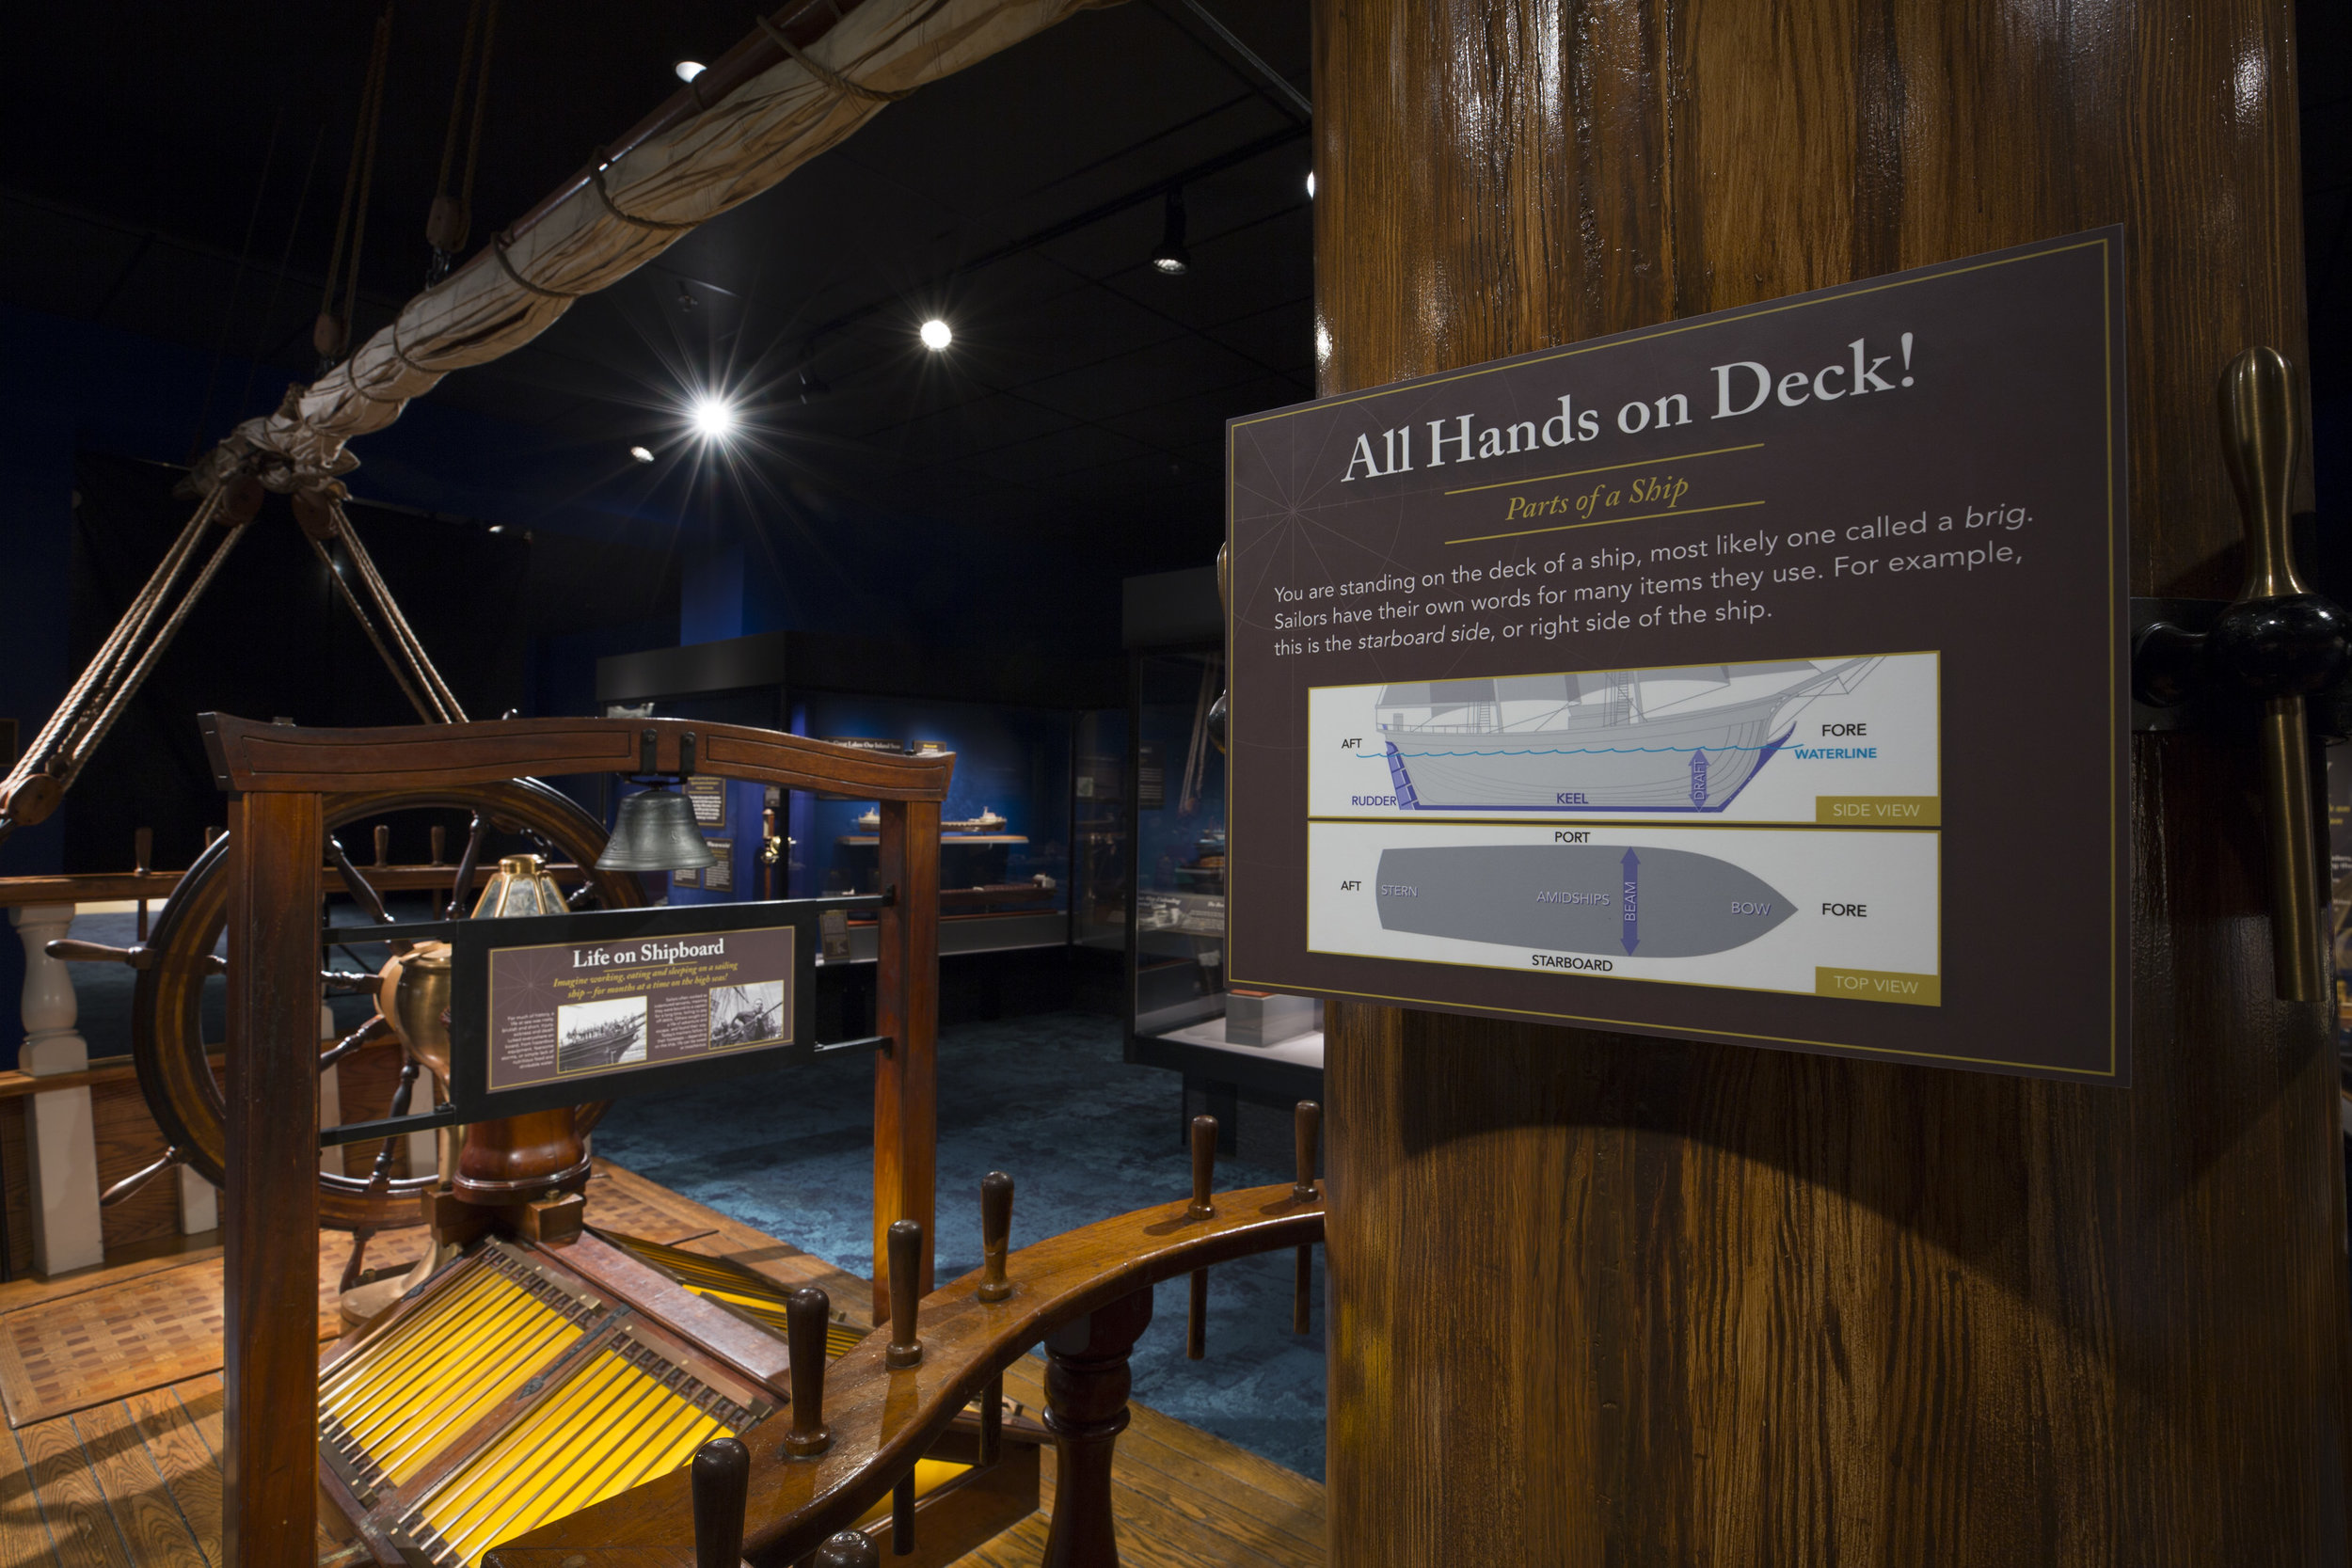 Ships Gallery - Deck Signage